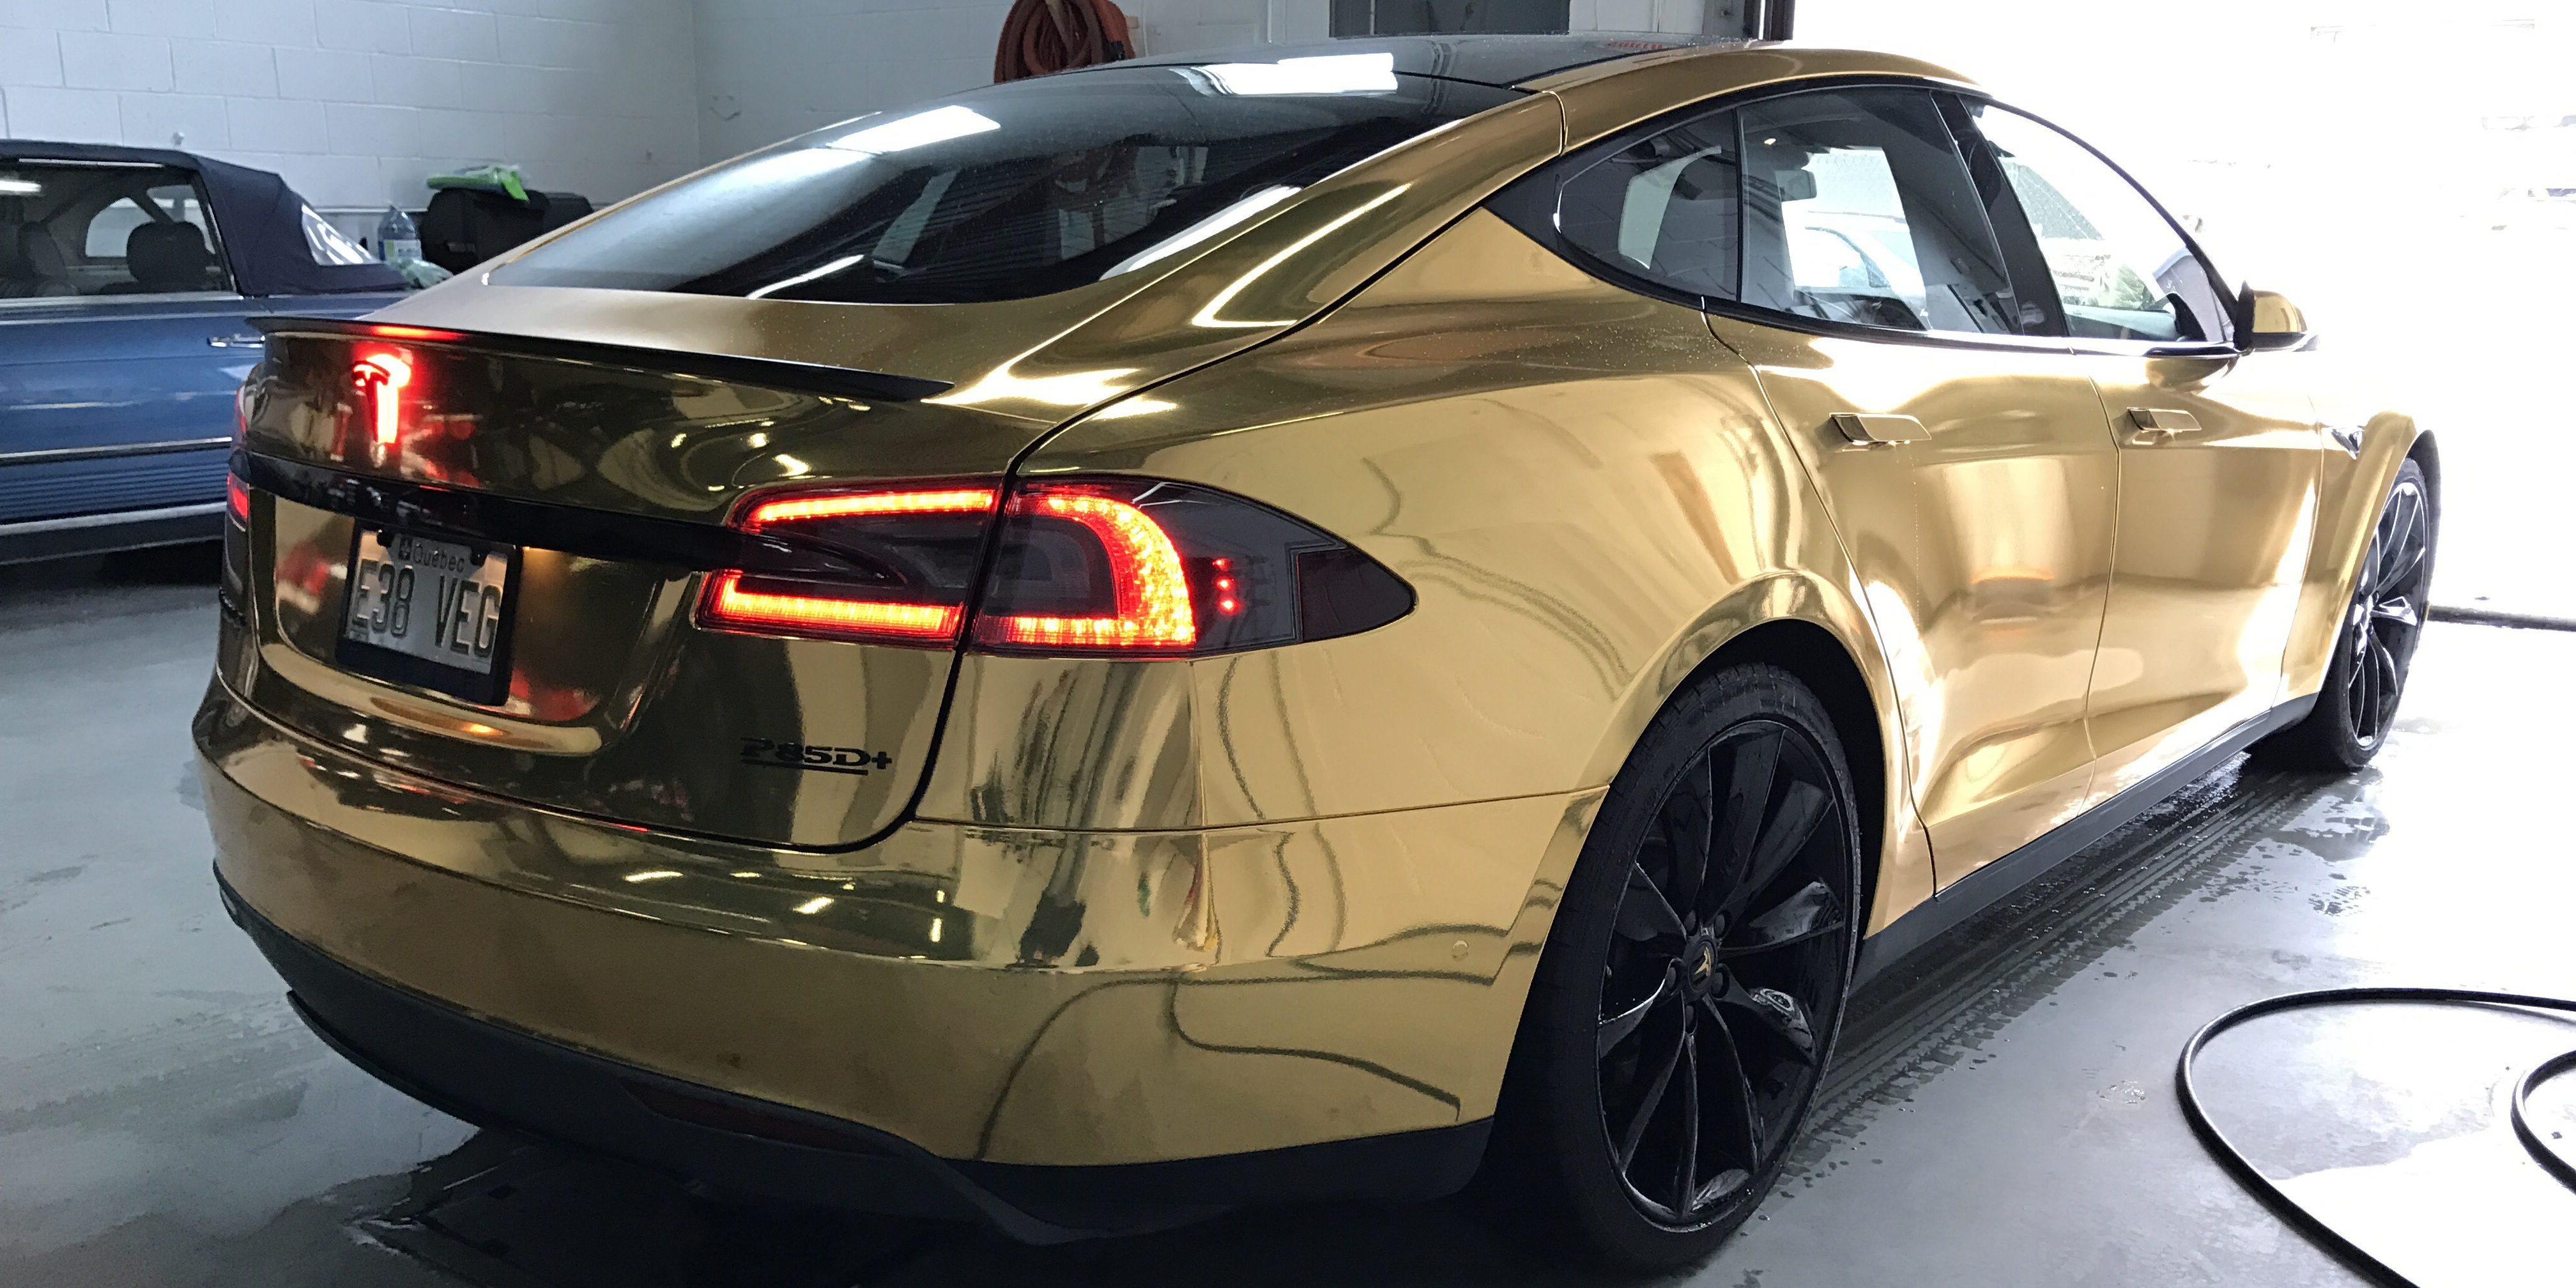 Gold S A Tesla Fit For President Trump Gallery Of New Gold Chrome